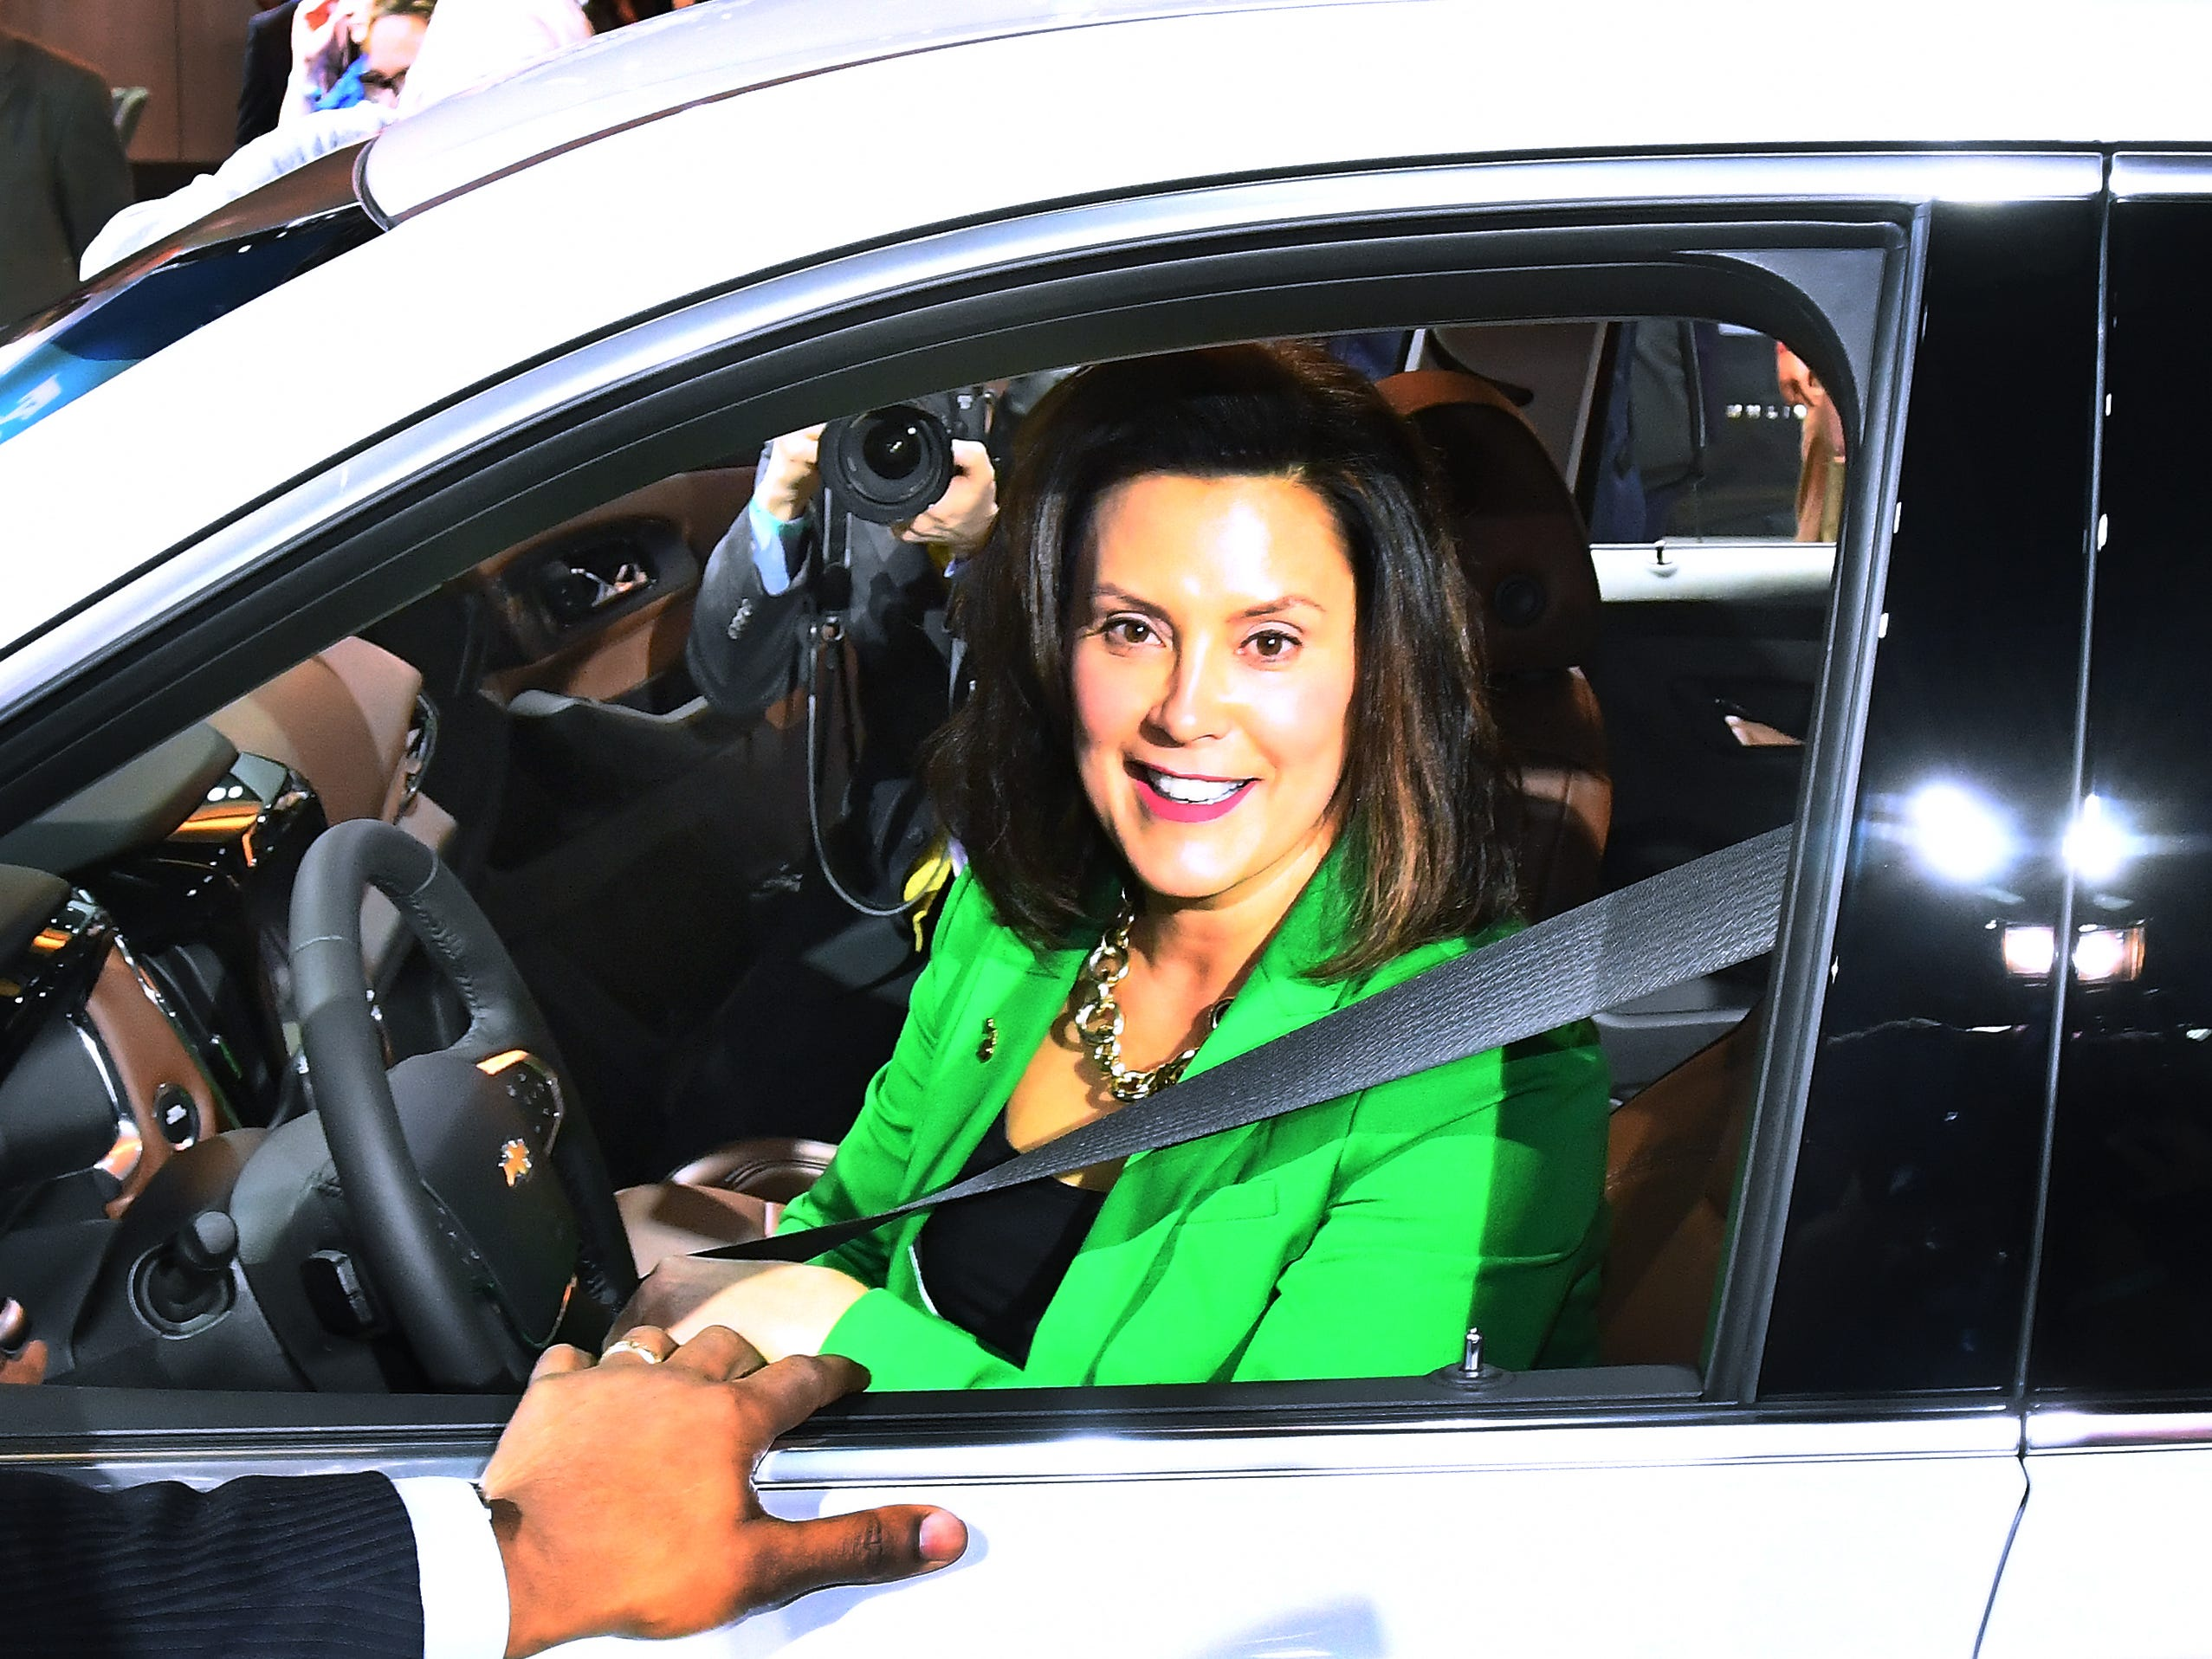 Michigan Governor Gretchen Whitmer gets a feel for the Chevrolet Traverse in the General Motors display during a tour of the North American International Auto Show during media preview days at Cobo Center in Detroit, Michigan on January 14, 2019.